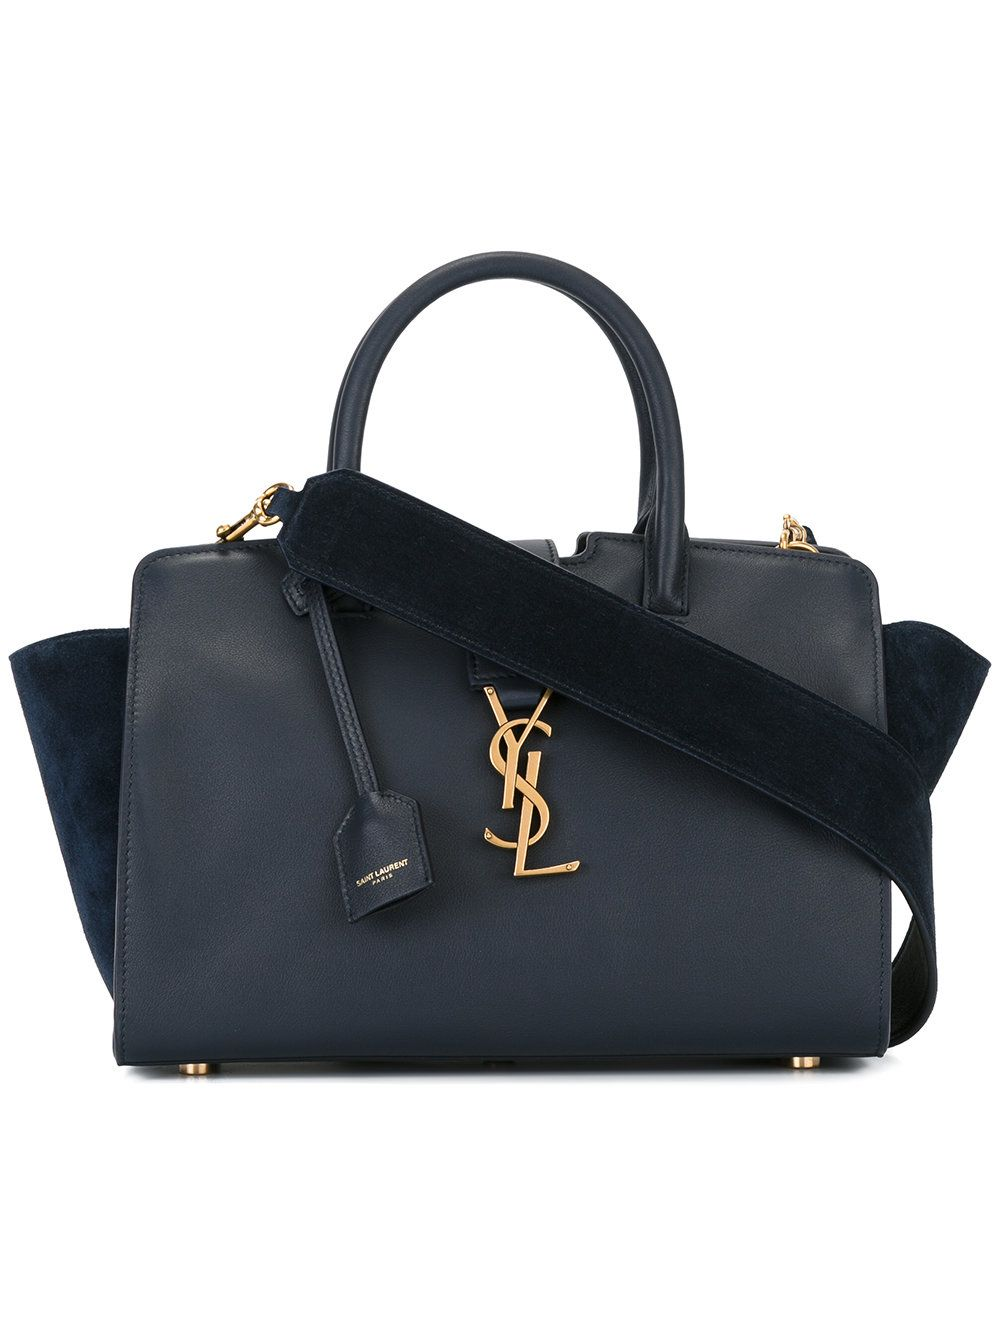 993604522d93 SAINT LAURENT baby Monogram Downtown Cabas YSL bag